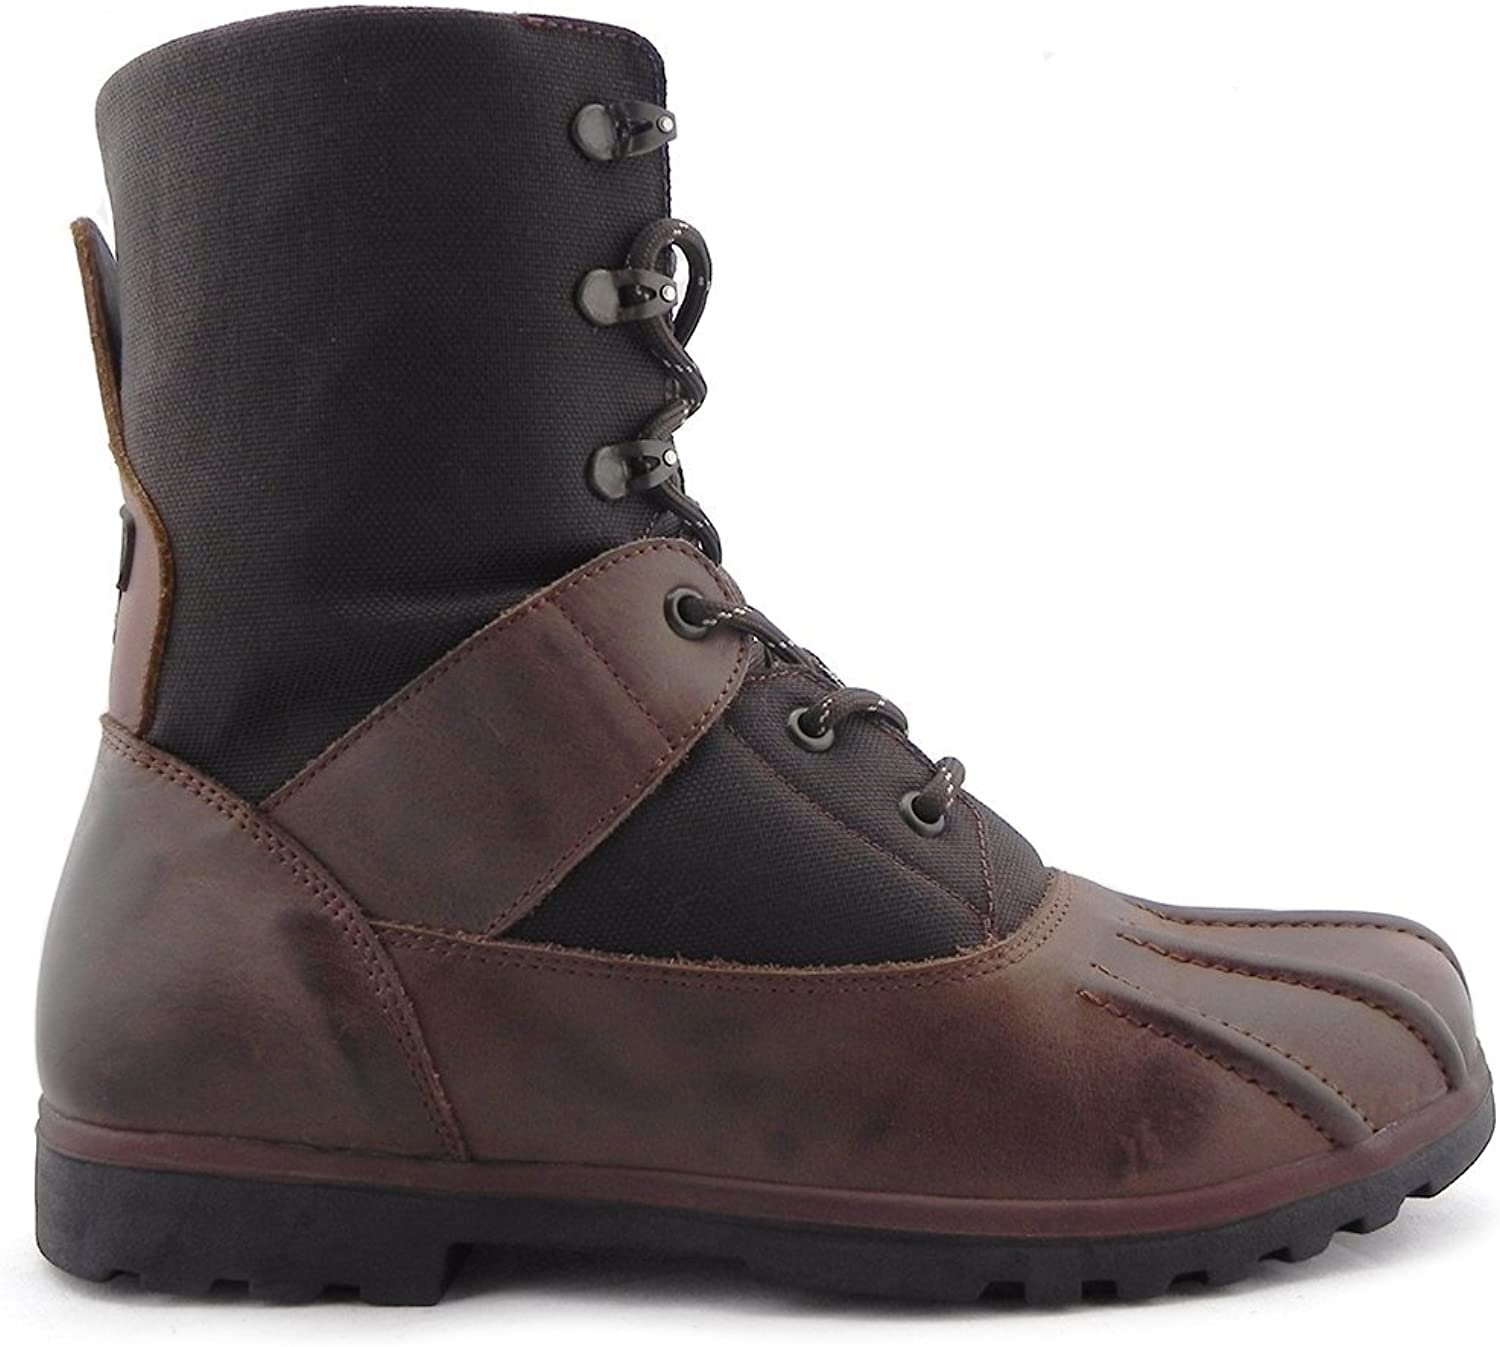 TREDAGAIN Men's Stylish Duck Boot